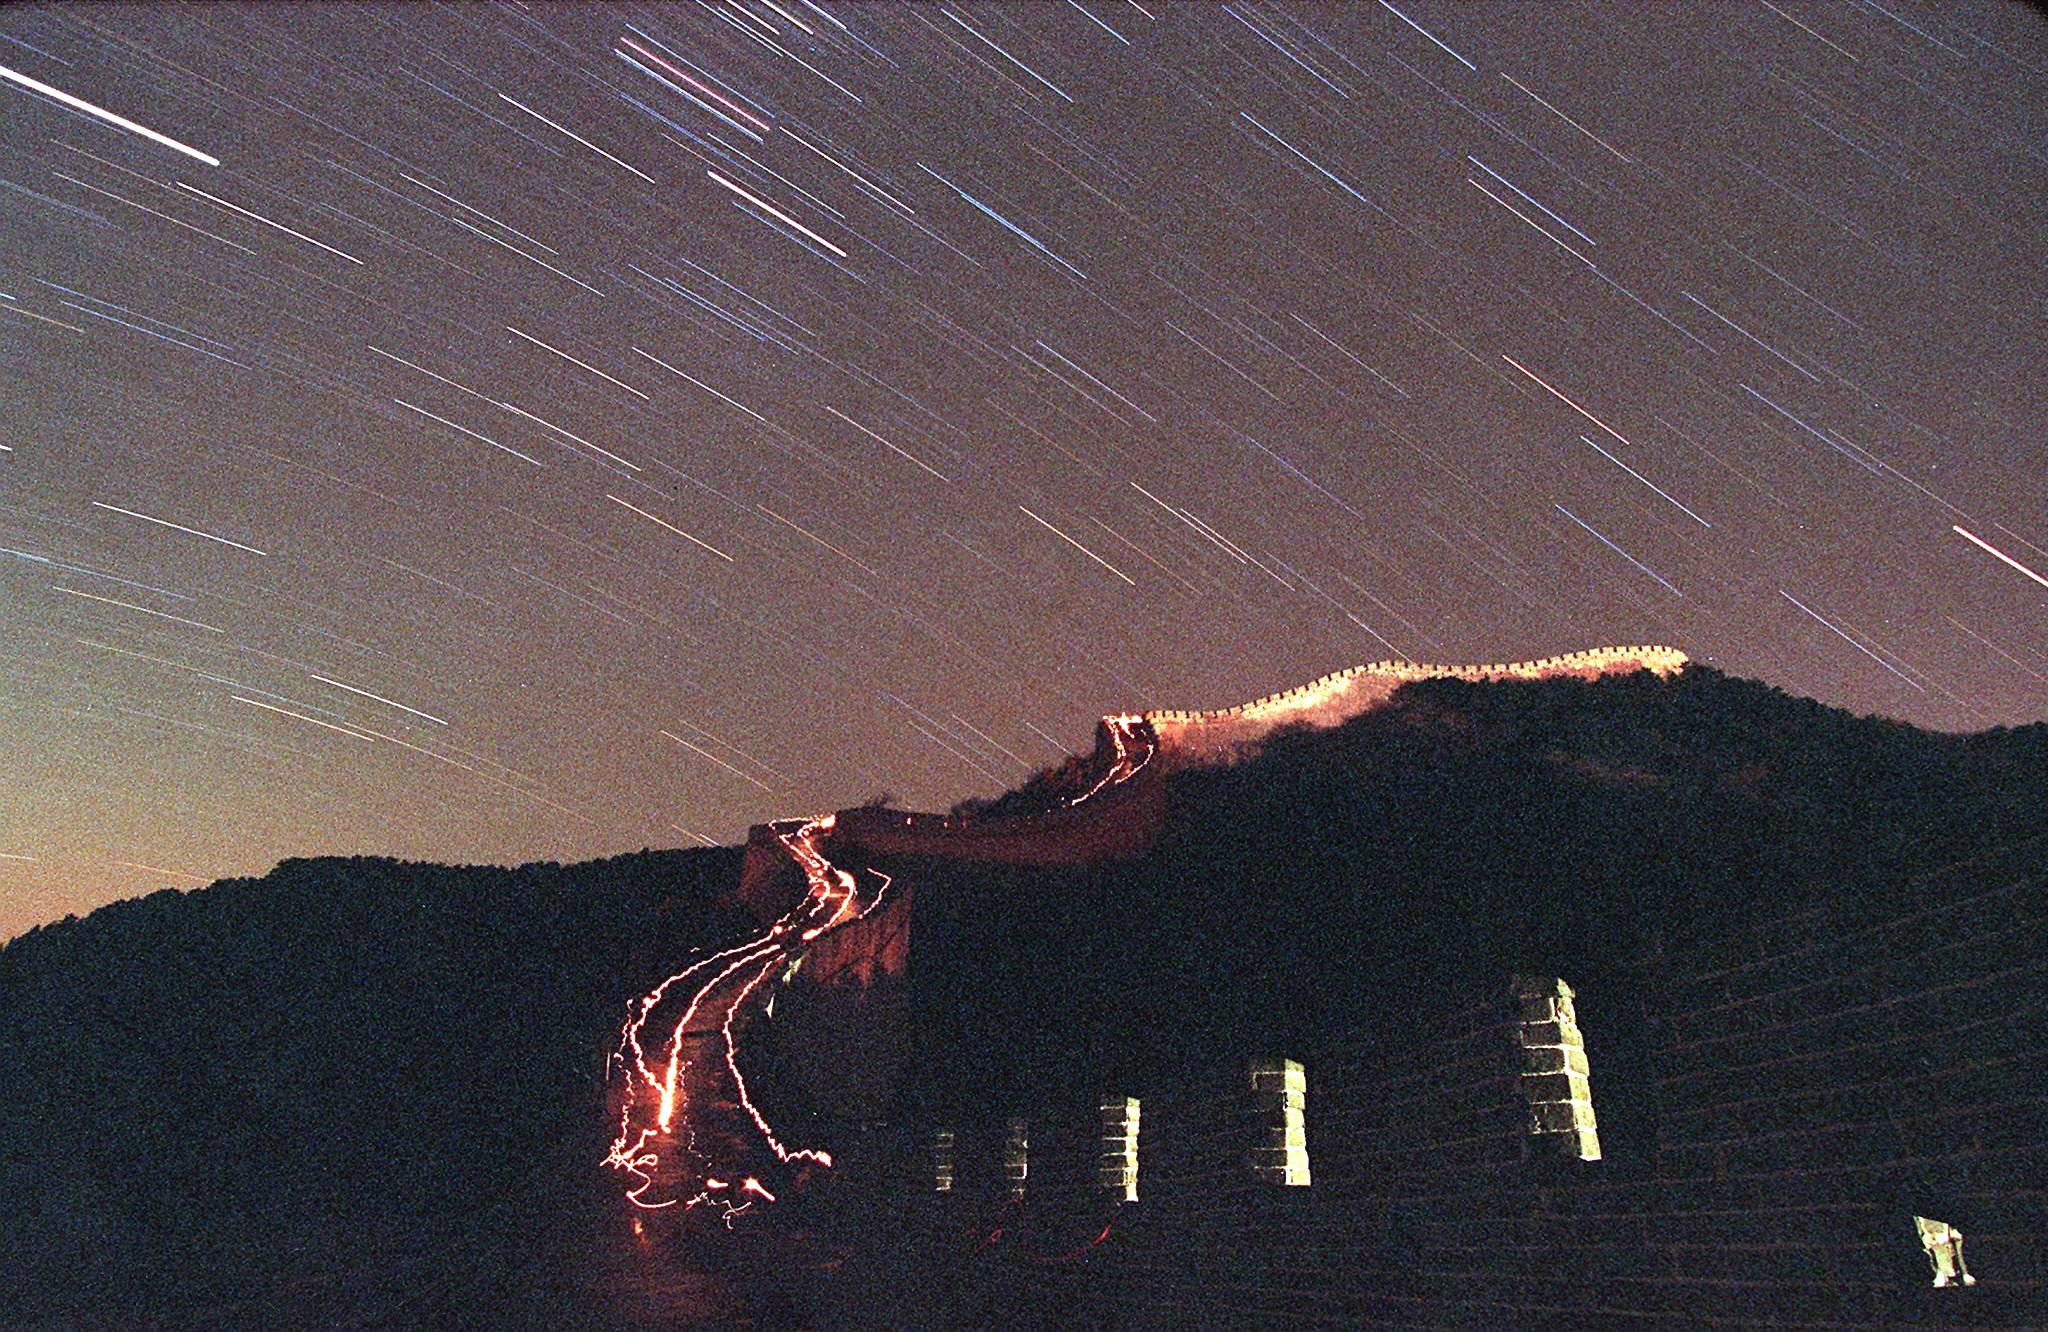 The Leonid meteor shower lights up the sky above China's Great Wall